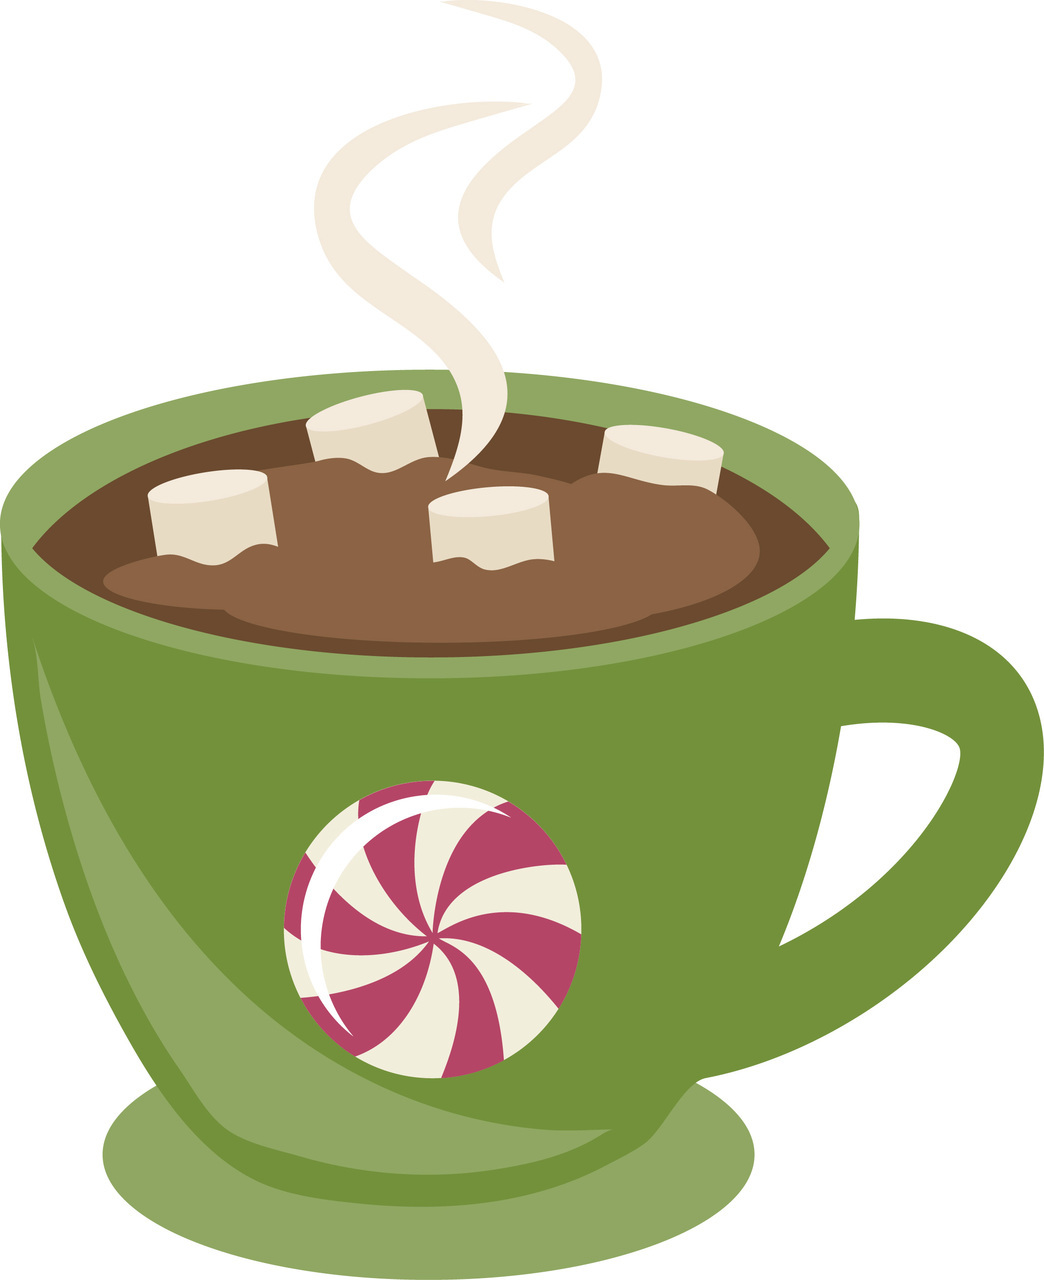 chocolate-clipart-hot-chocolate-clipart-1.jpg